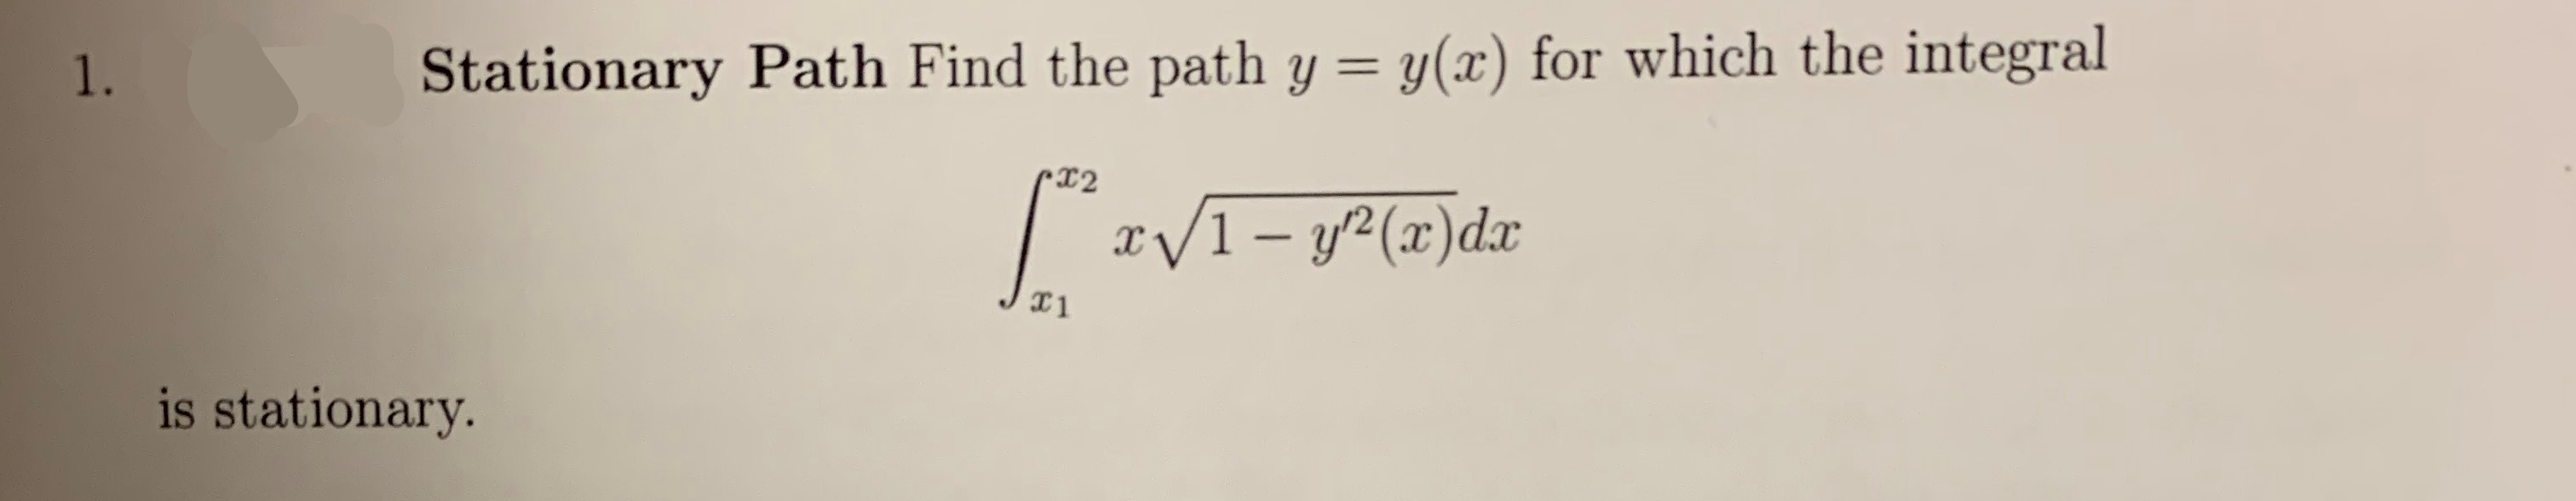 y(x) for which the integral Stationary Path Find the path y 1. X2 I/1-y2(x)dx X1 is stationary.